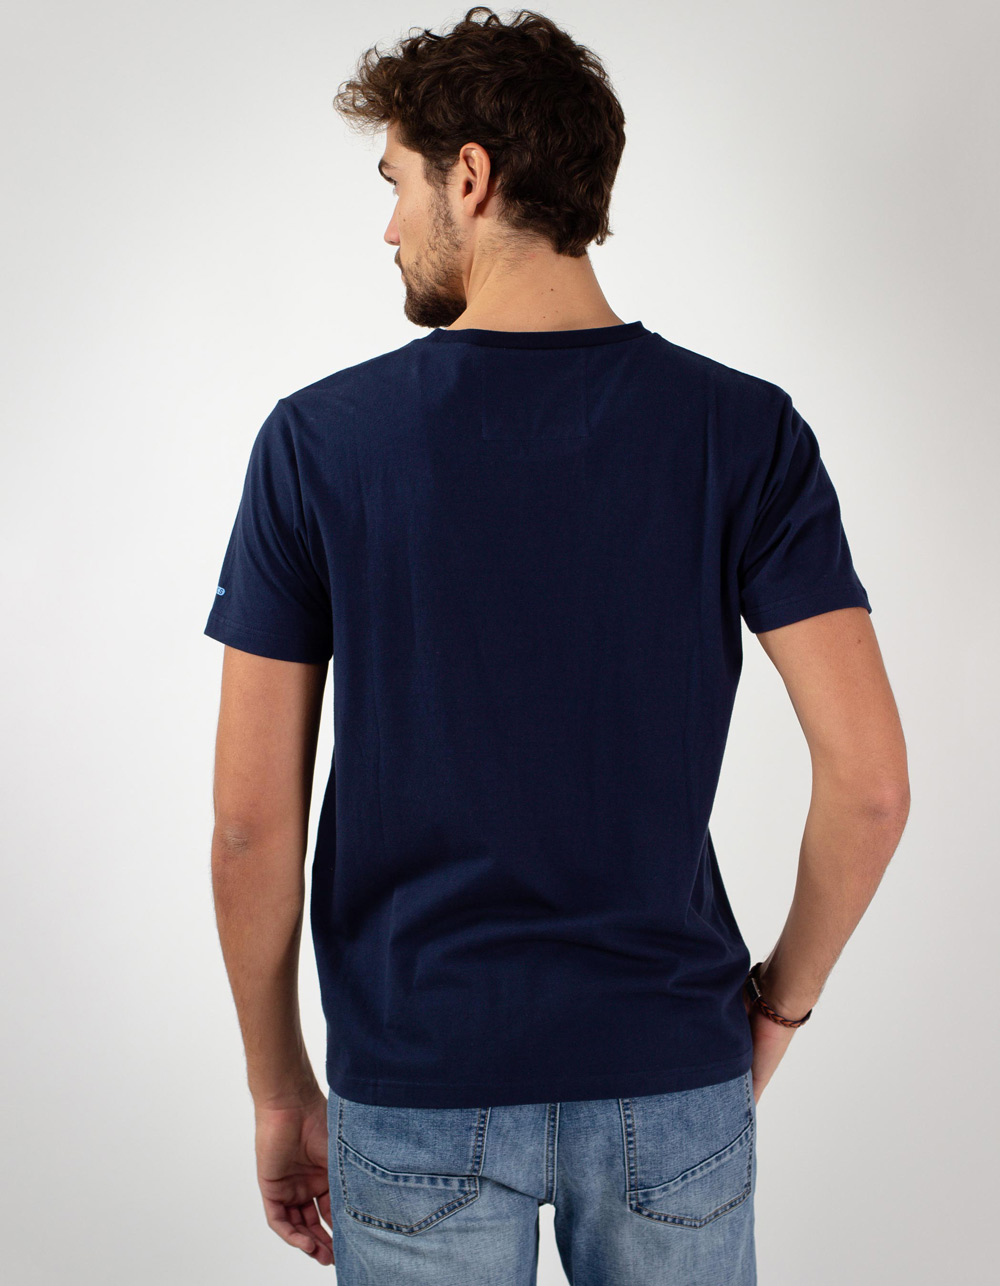 Blue Macson University t-shirt - Backside